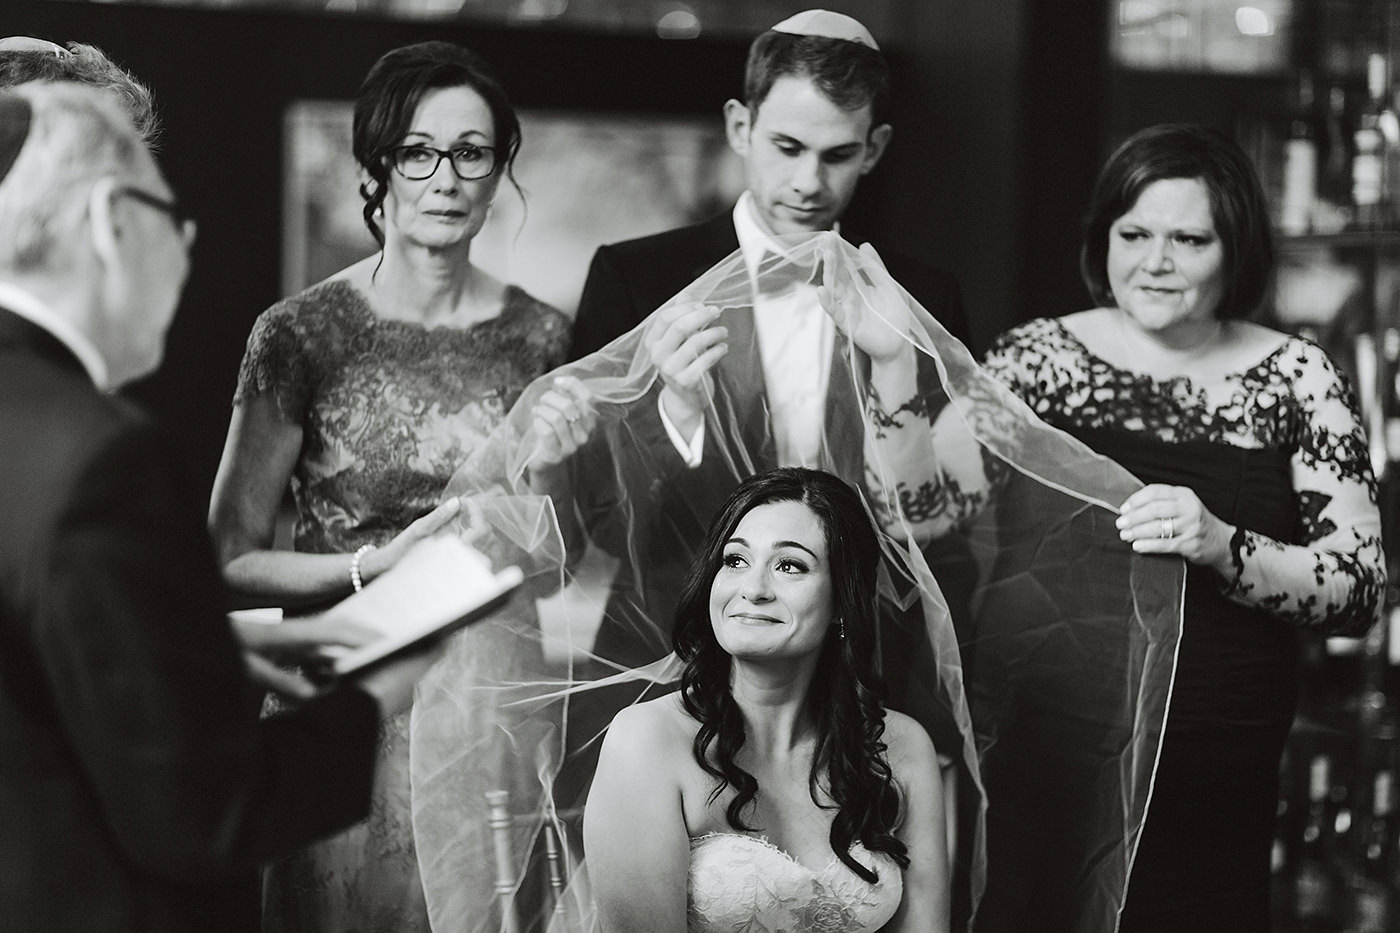 Candid wedding photo from a Montreal wedding